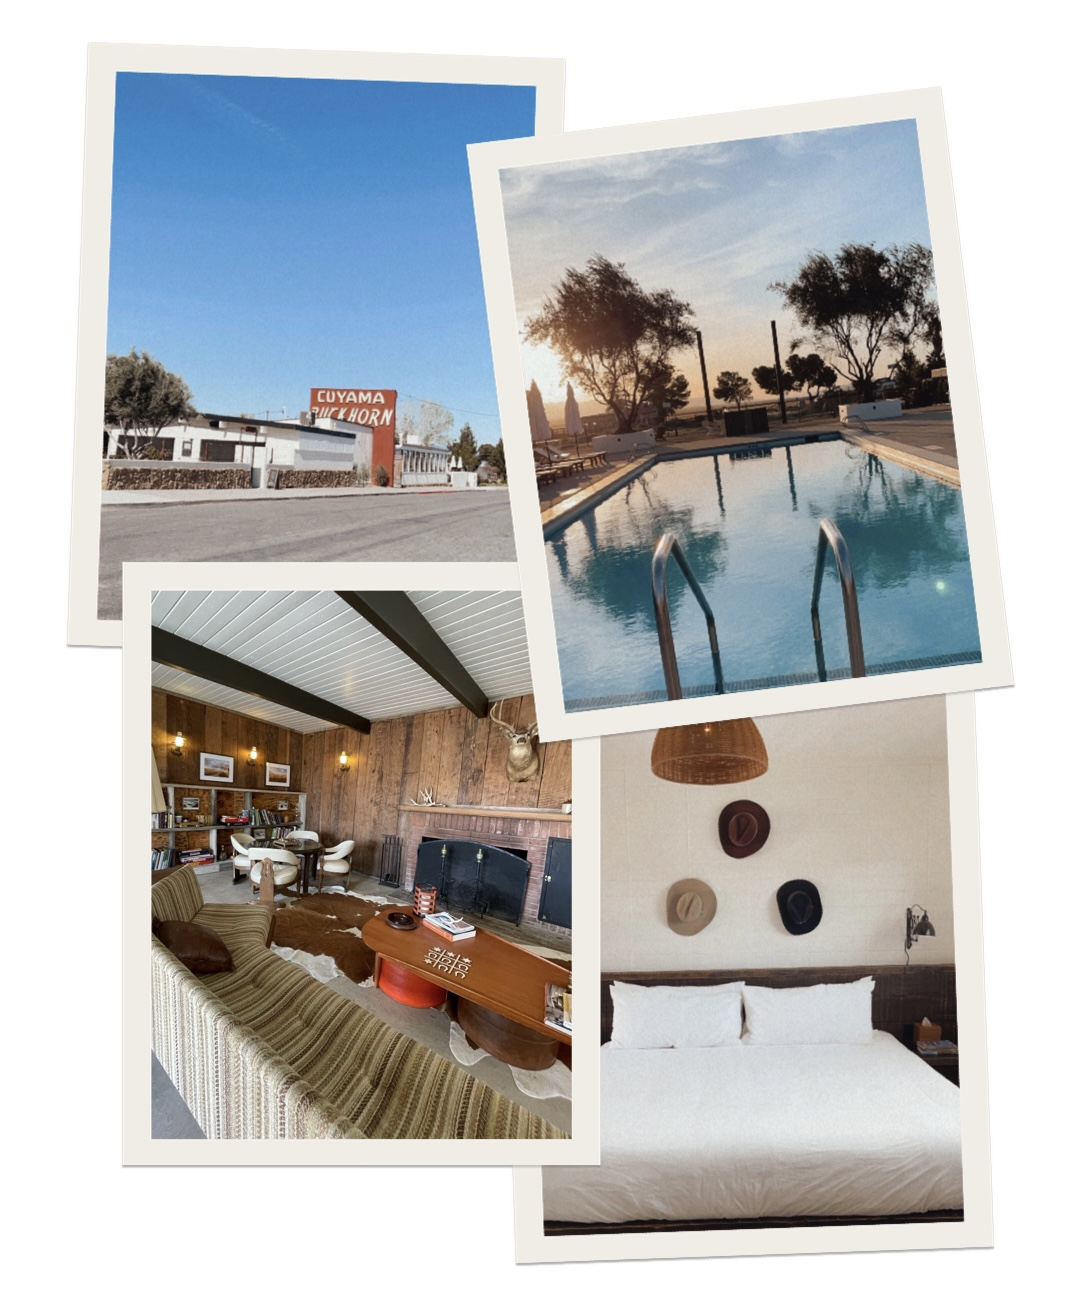 collage of images in Cuyama Buckhorn with bed, pool, and sofa